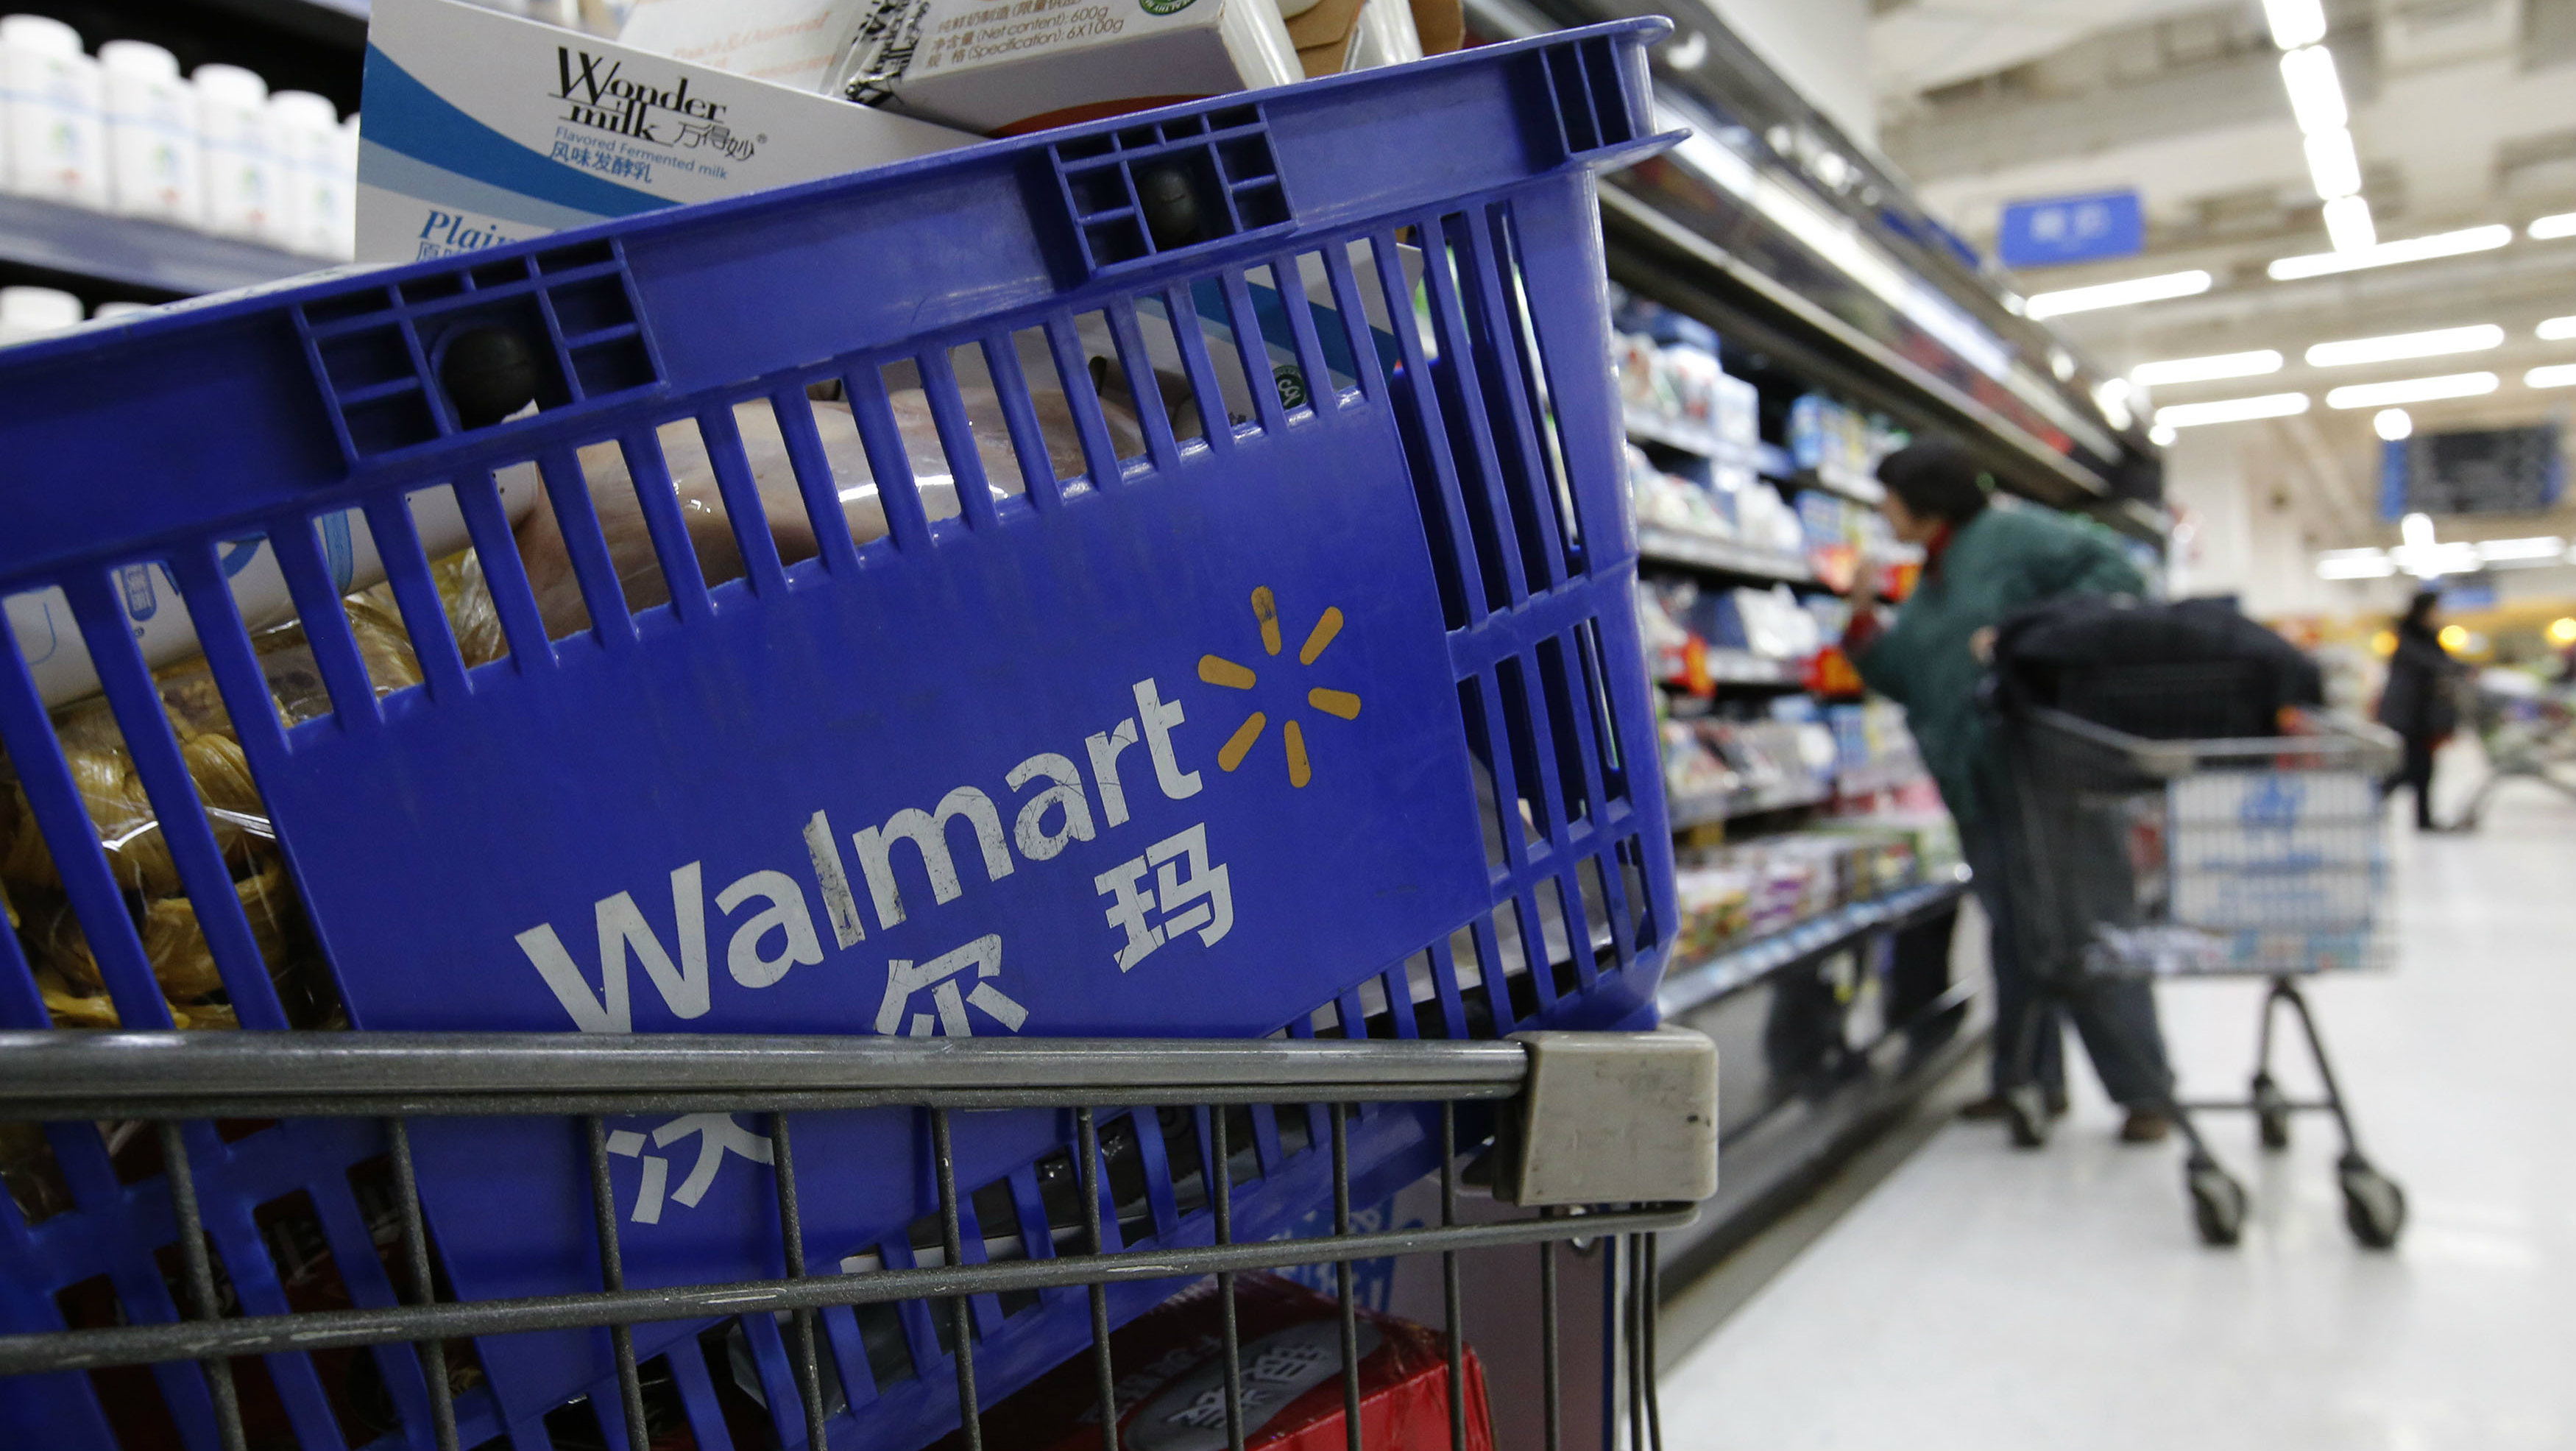 A shopping cart full of products is seen as a customer shops at a Wal-Mart store in Beijing, February 18, 2014. Wal-Mart Stores Inc, famed for its low prices, has stumbled in the one major market where consumers say price is less of a driver in their buying decisions: China. There, consumers say they want food that is safe and authentic, and, after 17 years, Wal-Mart is changing its approach, closing some big-box stores that never quite caught on with locals. Instead, it's focusing on private-label products and imports, putting its stamp on quality and safety. Picture taken February 18, 2014.